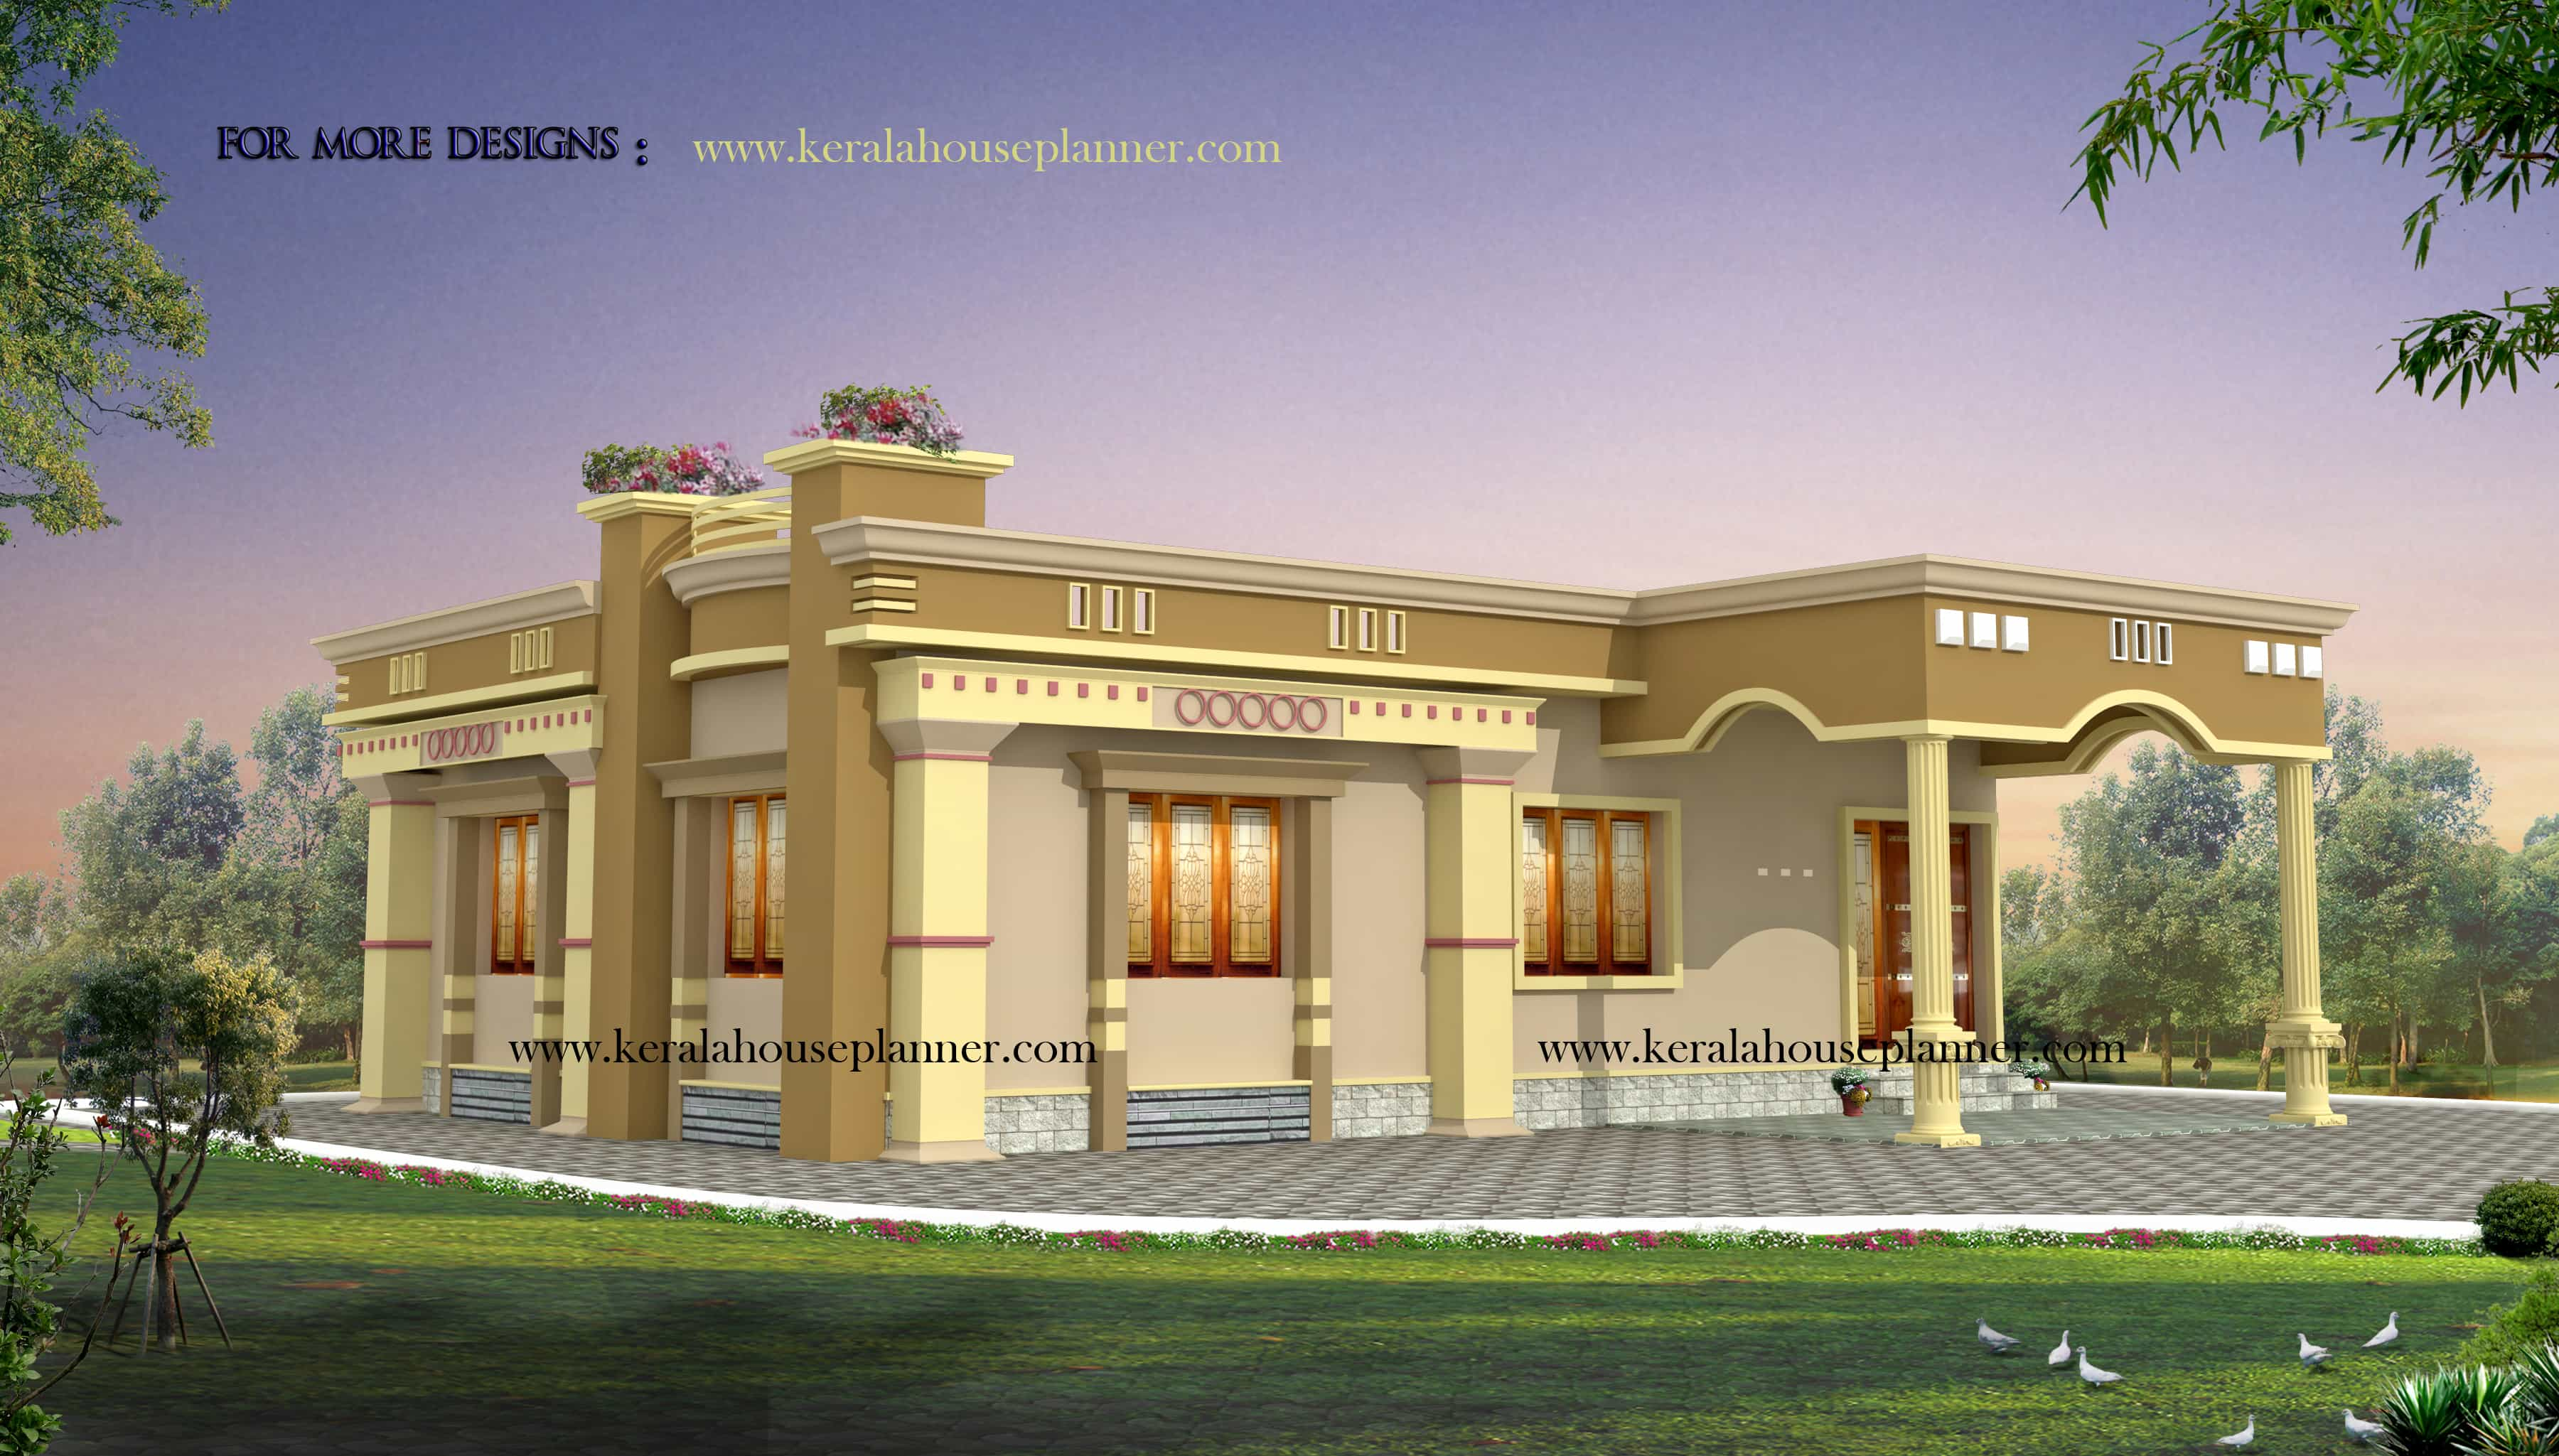 Kerala house plans 1200 sq ft with photos khp for Home designs in kerala